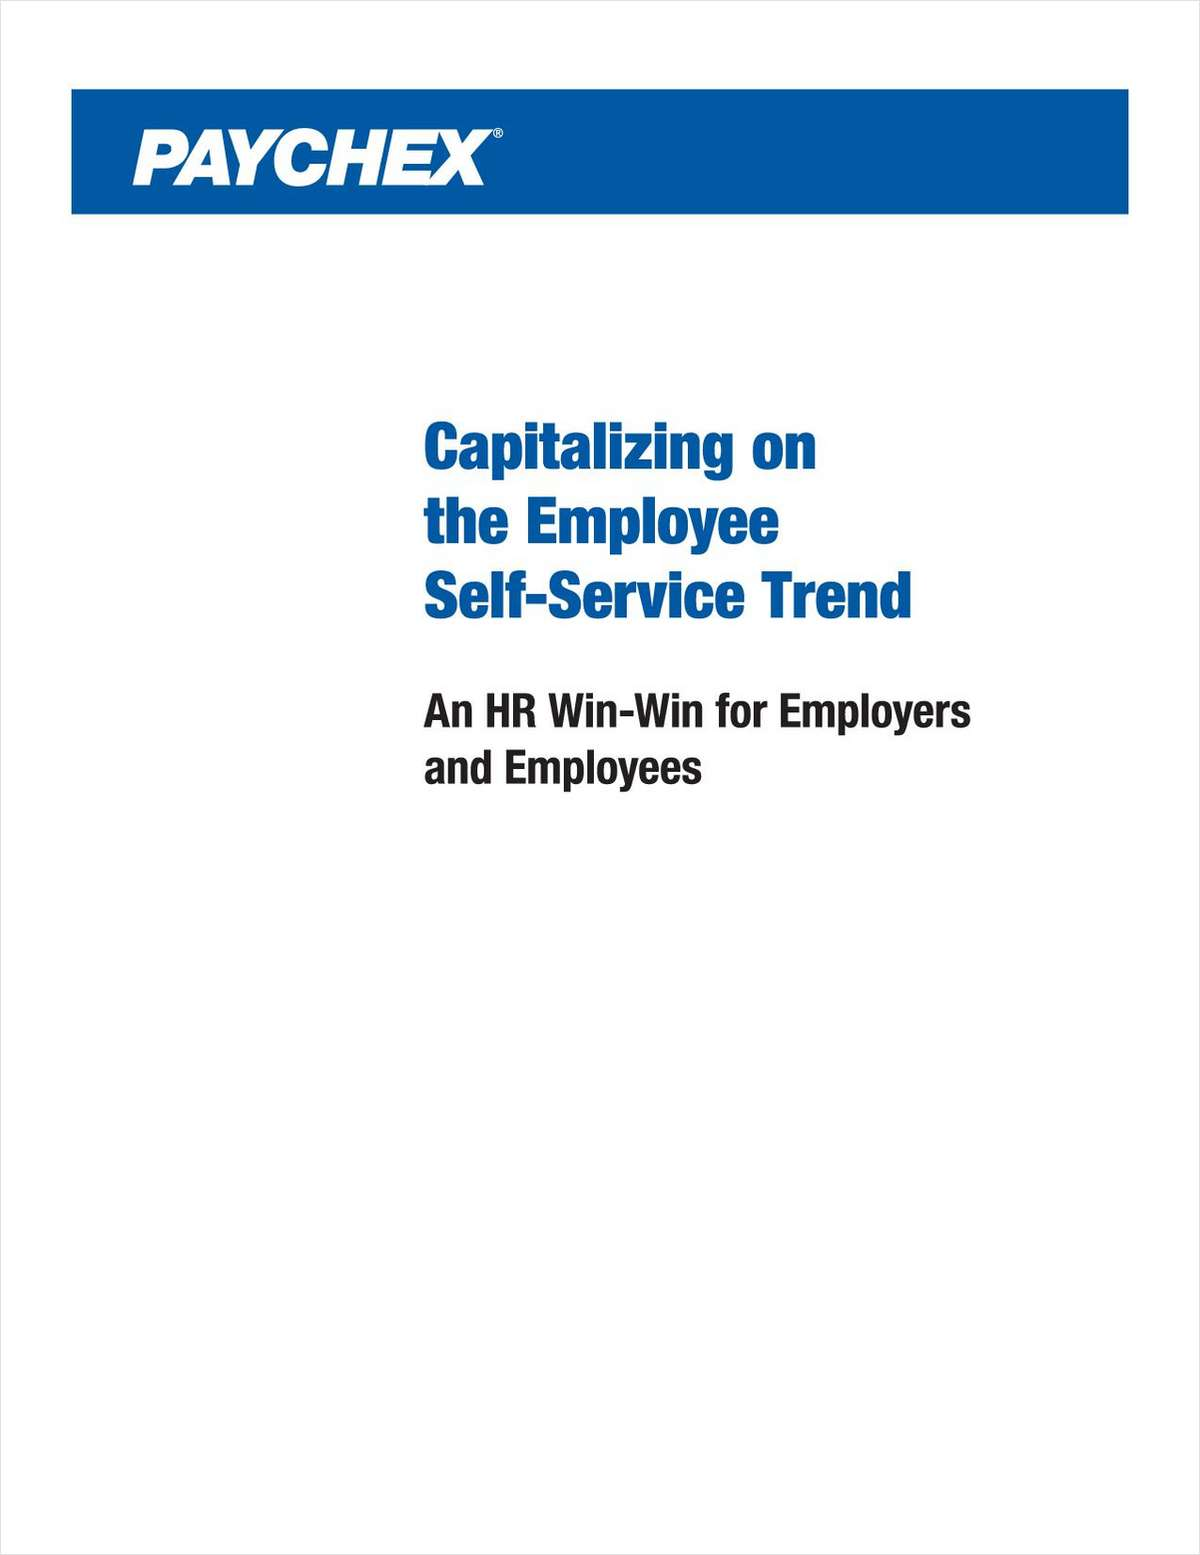 Capitalizing on the Trend of Self-Service: A Win-Win for the Employer and the Employee